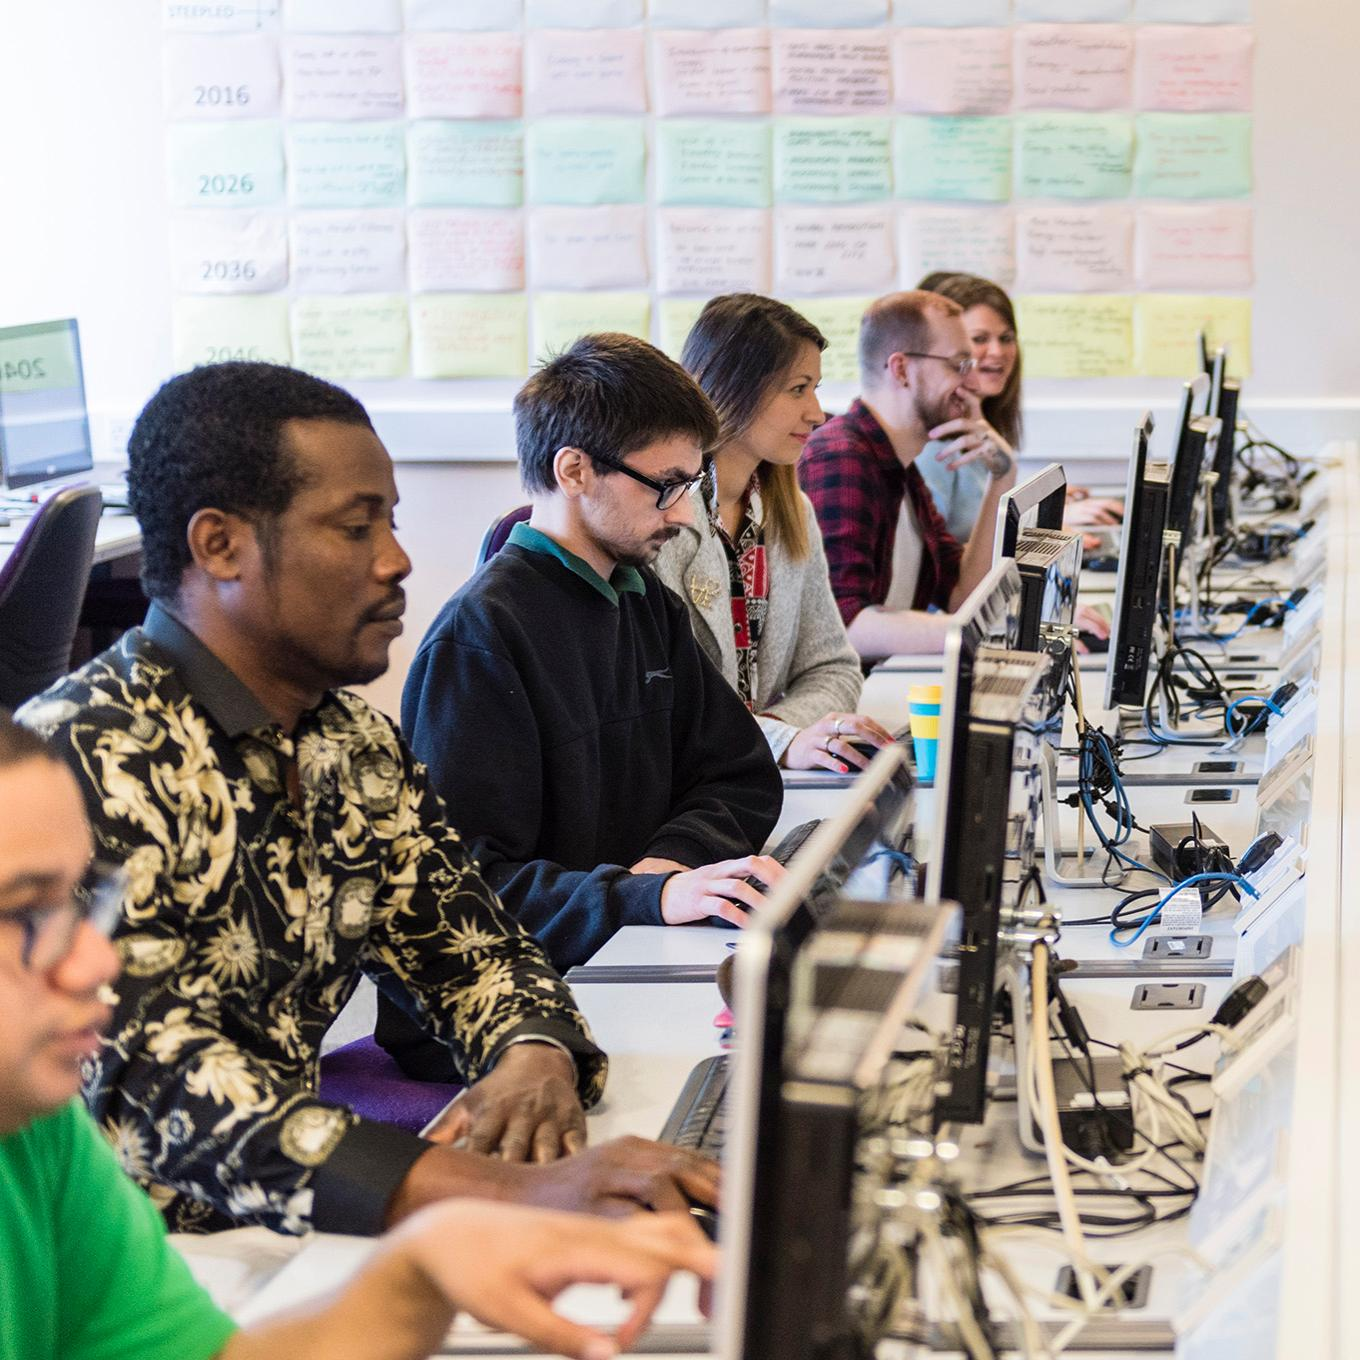 A row of computing students working in a computer lab